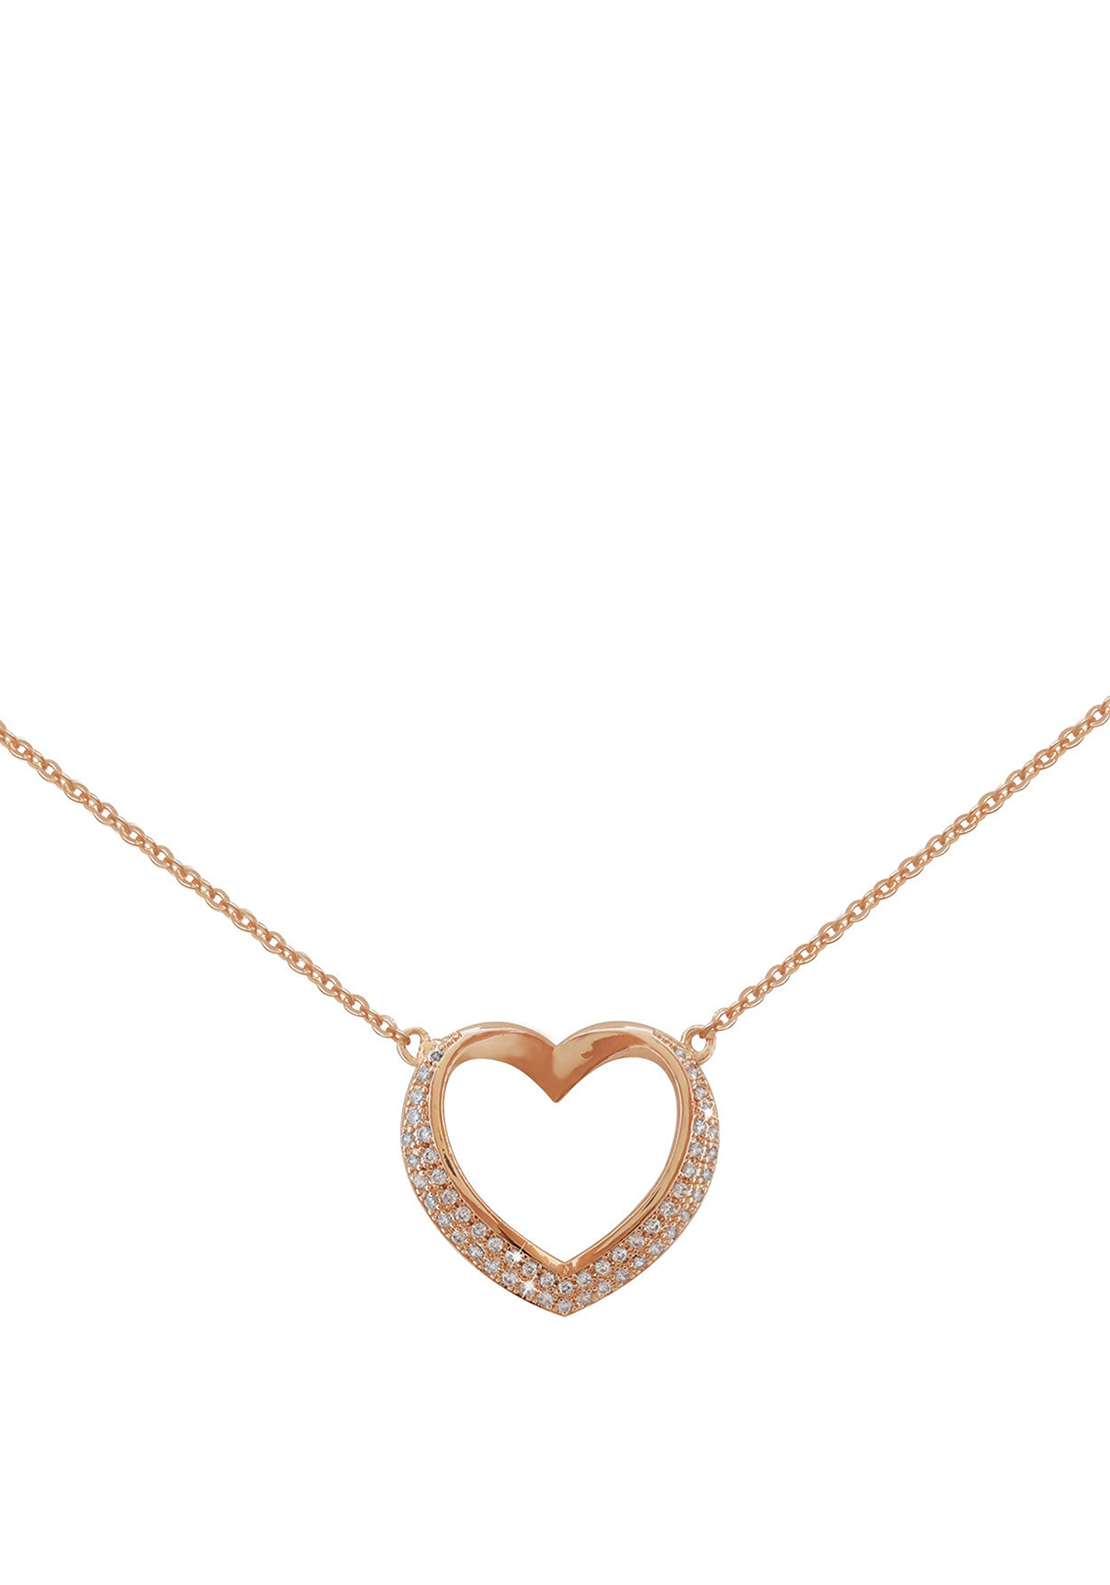 Tipperary Crystal Pave Set Heart Pendant Necklace, Rose Gold